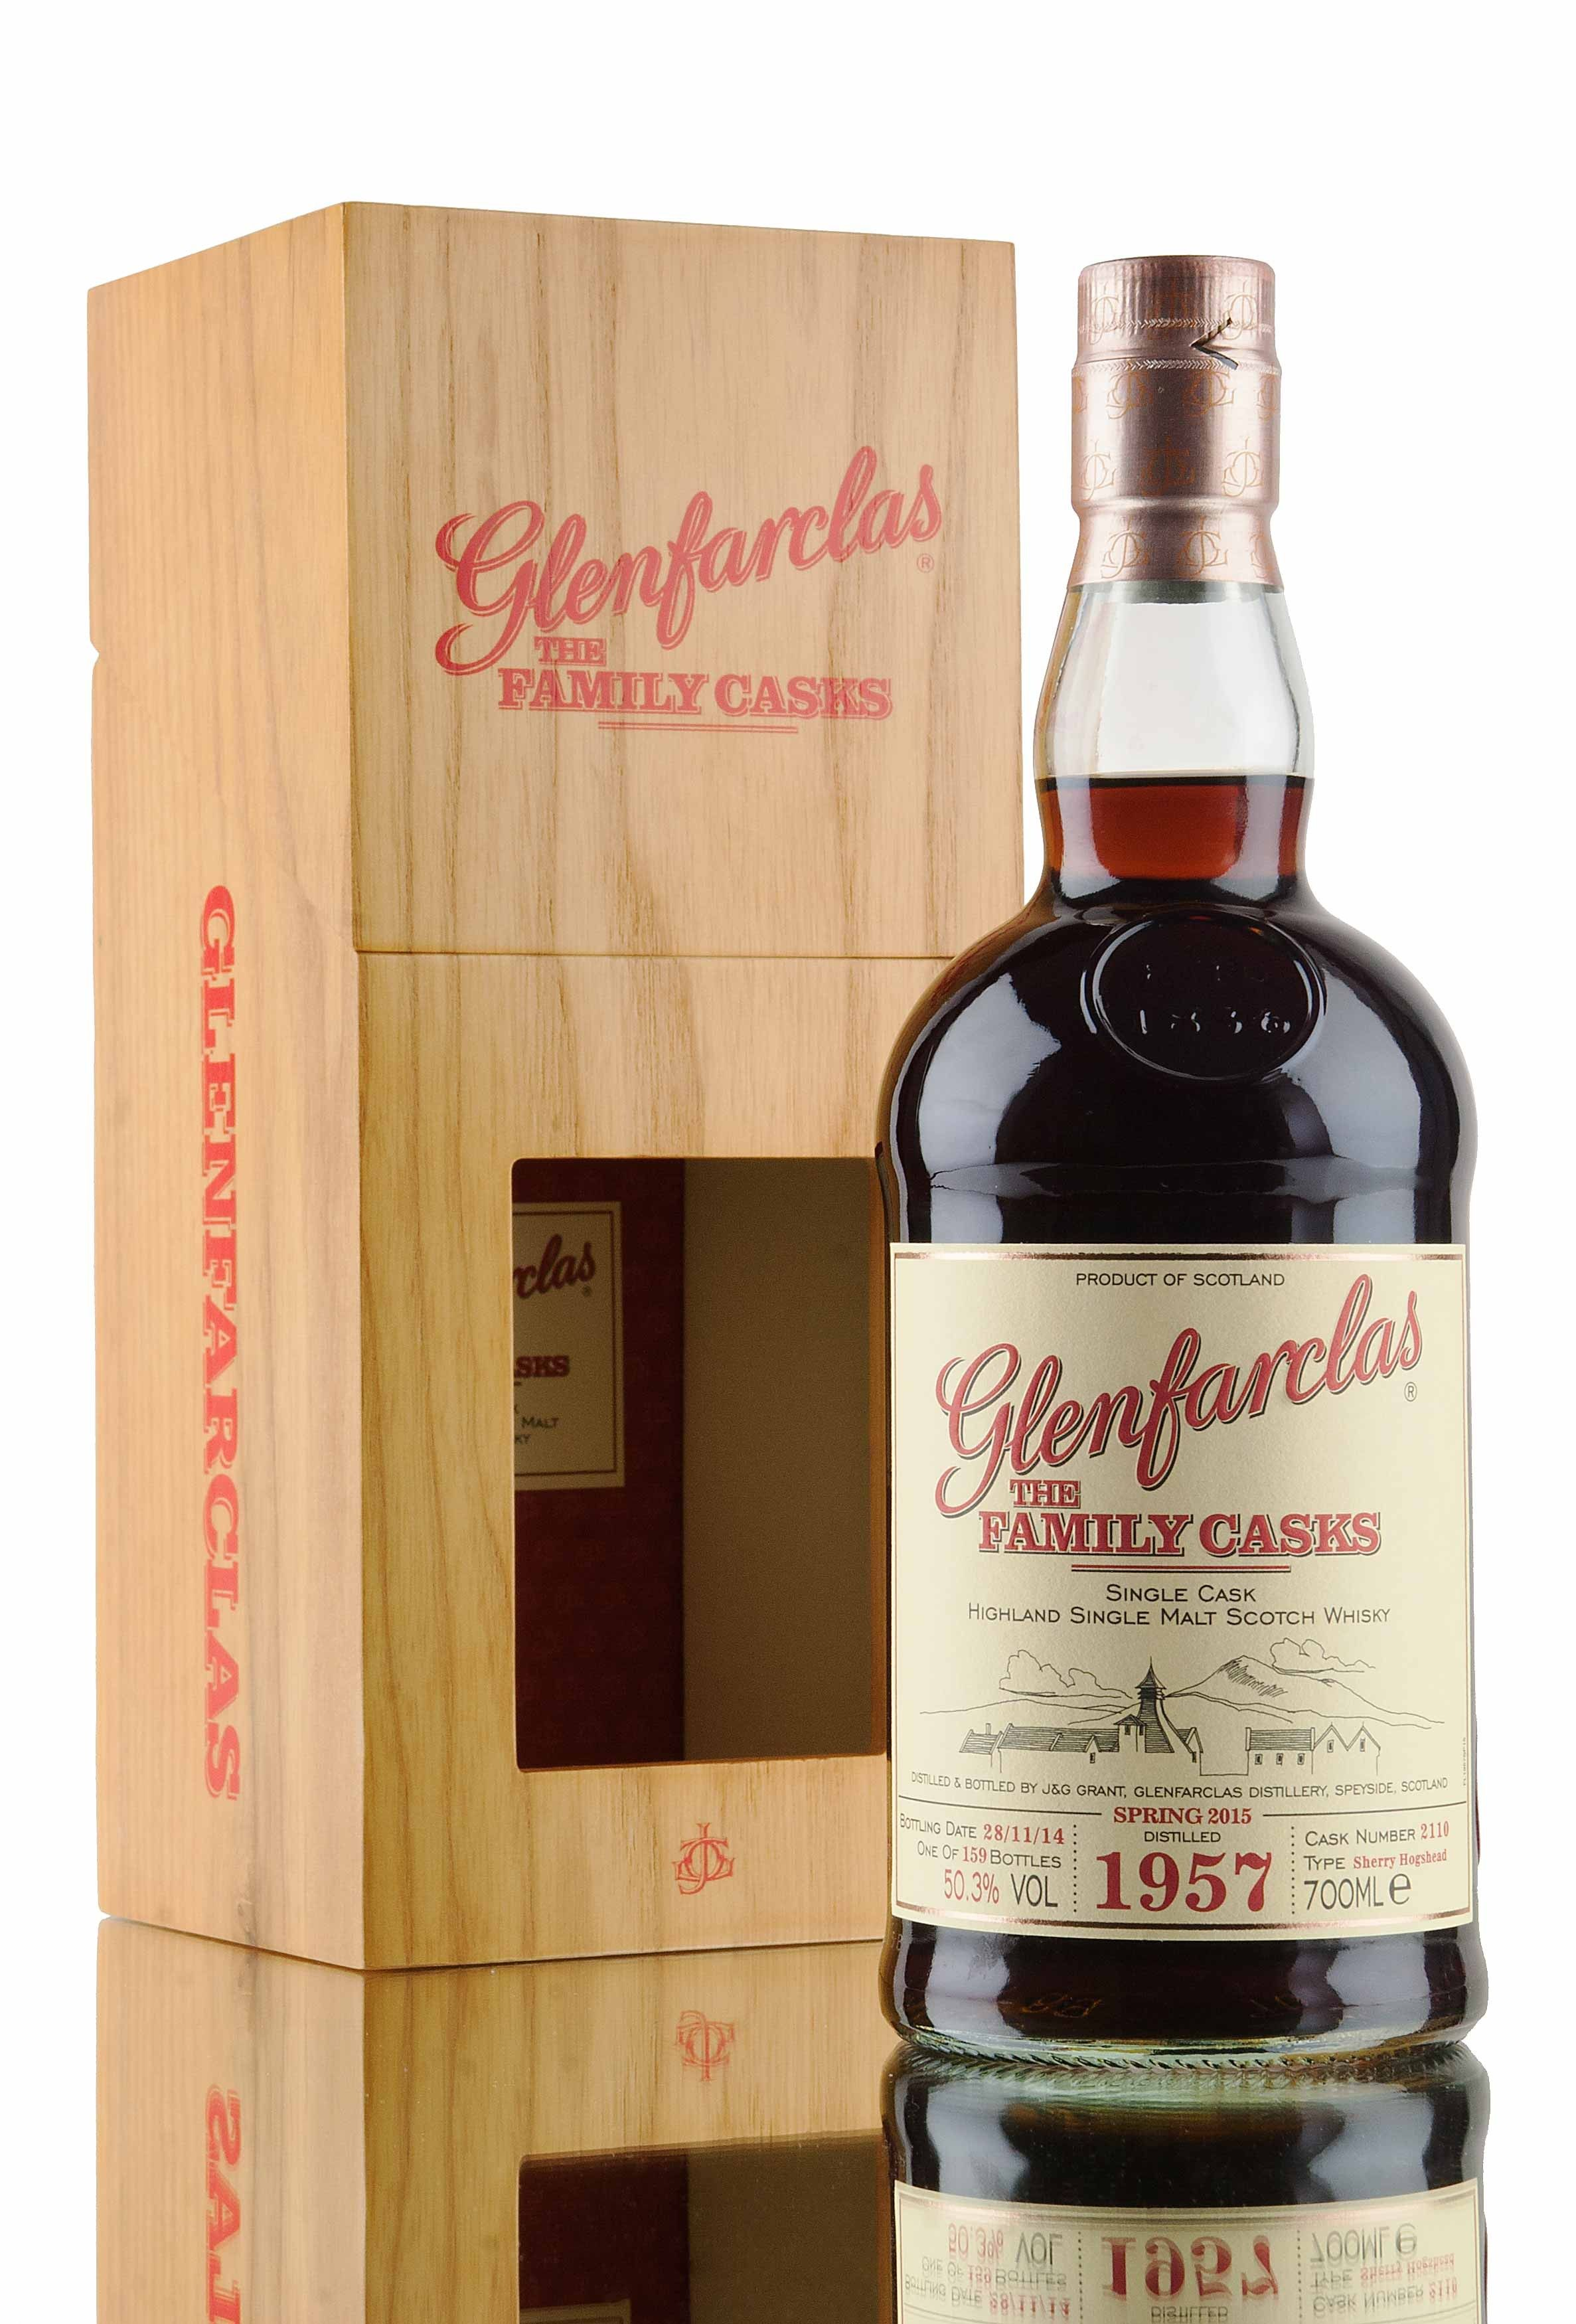 Another stunning single cask from Glenfarclas distillery, released as part of the Spring 2015 Family Casks range. Distilled in 1957 and left to mature in single sherry hogshead cask #2100 for approximately 57 years! A mere 159 bottles filled at cask strength, 50.3% vol. Glenfarclas 1957 single cask 2110, recently awarded Single Cask of the Year and Scotch Single Malt of the Year in Jim Murray's 2016 whisky bible, with a score of 96.5/100!